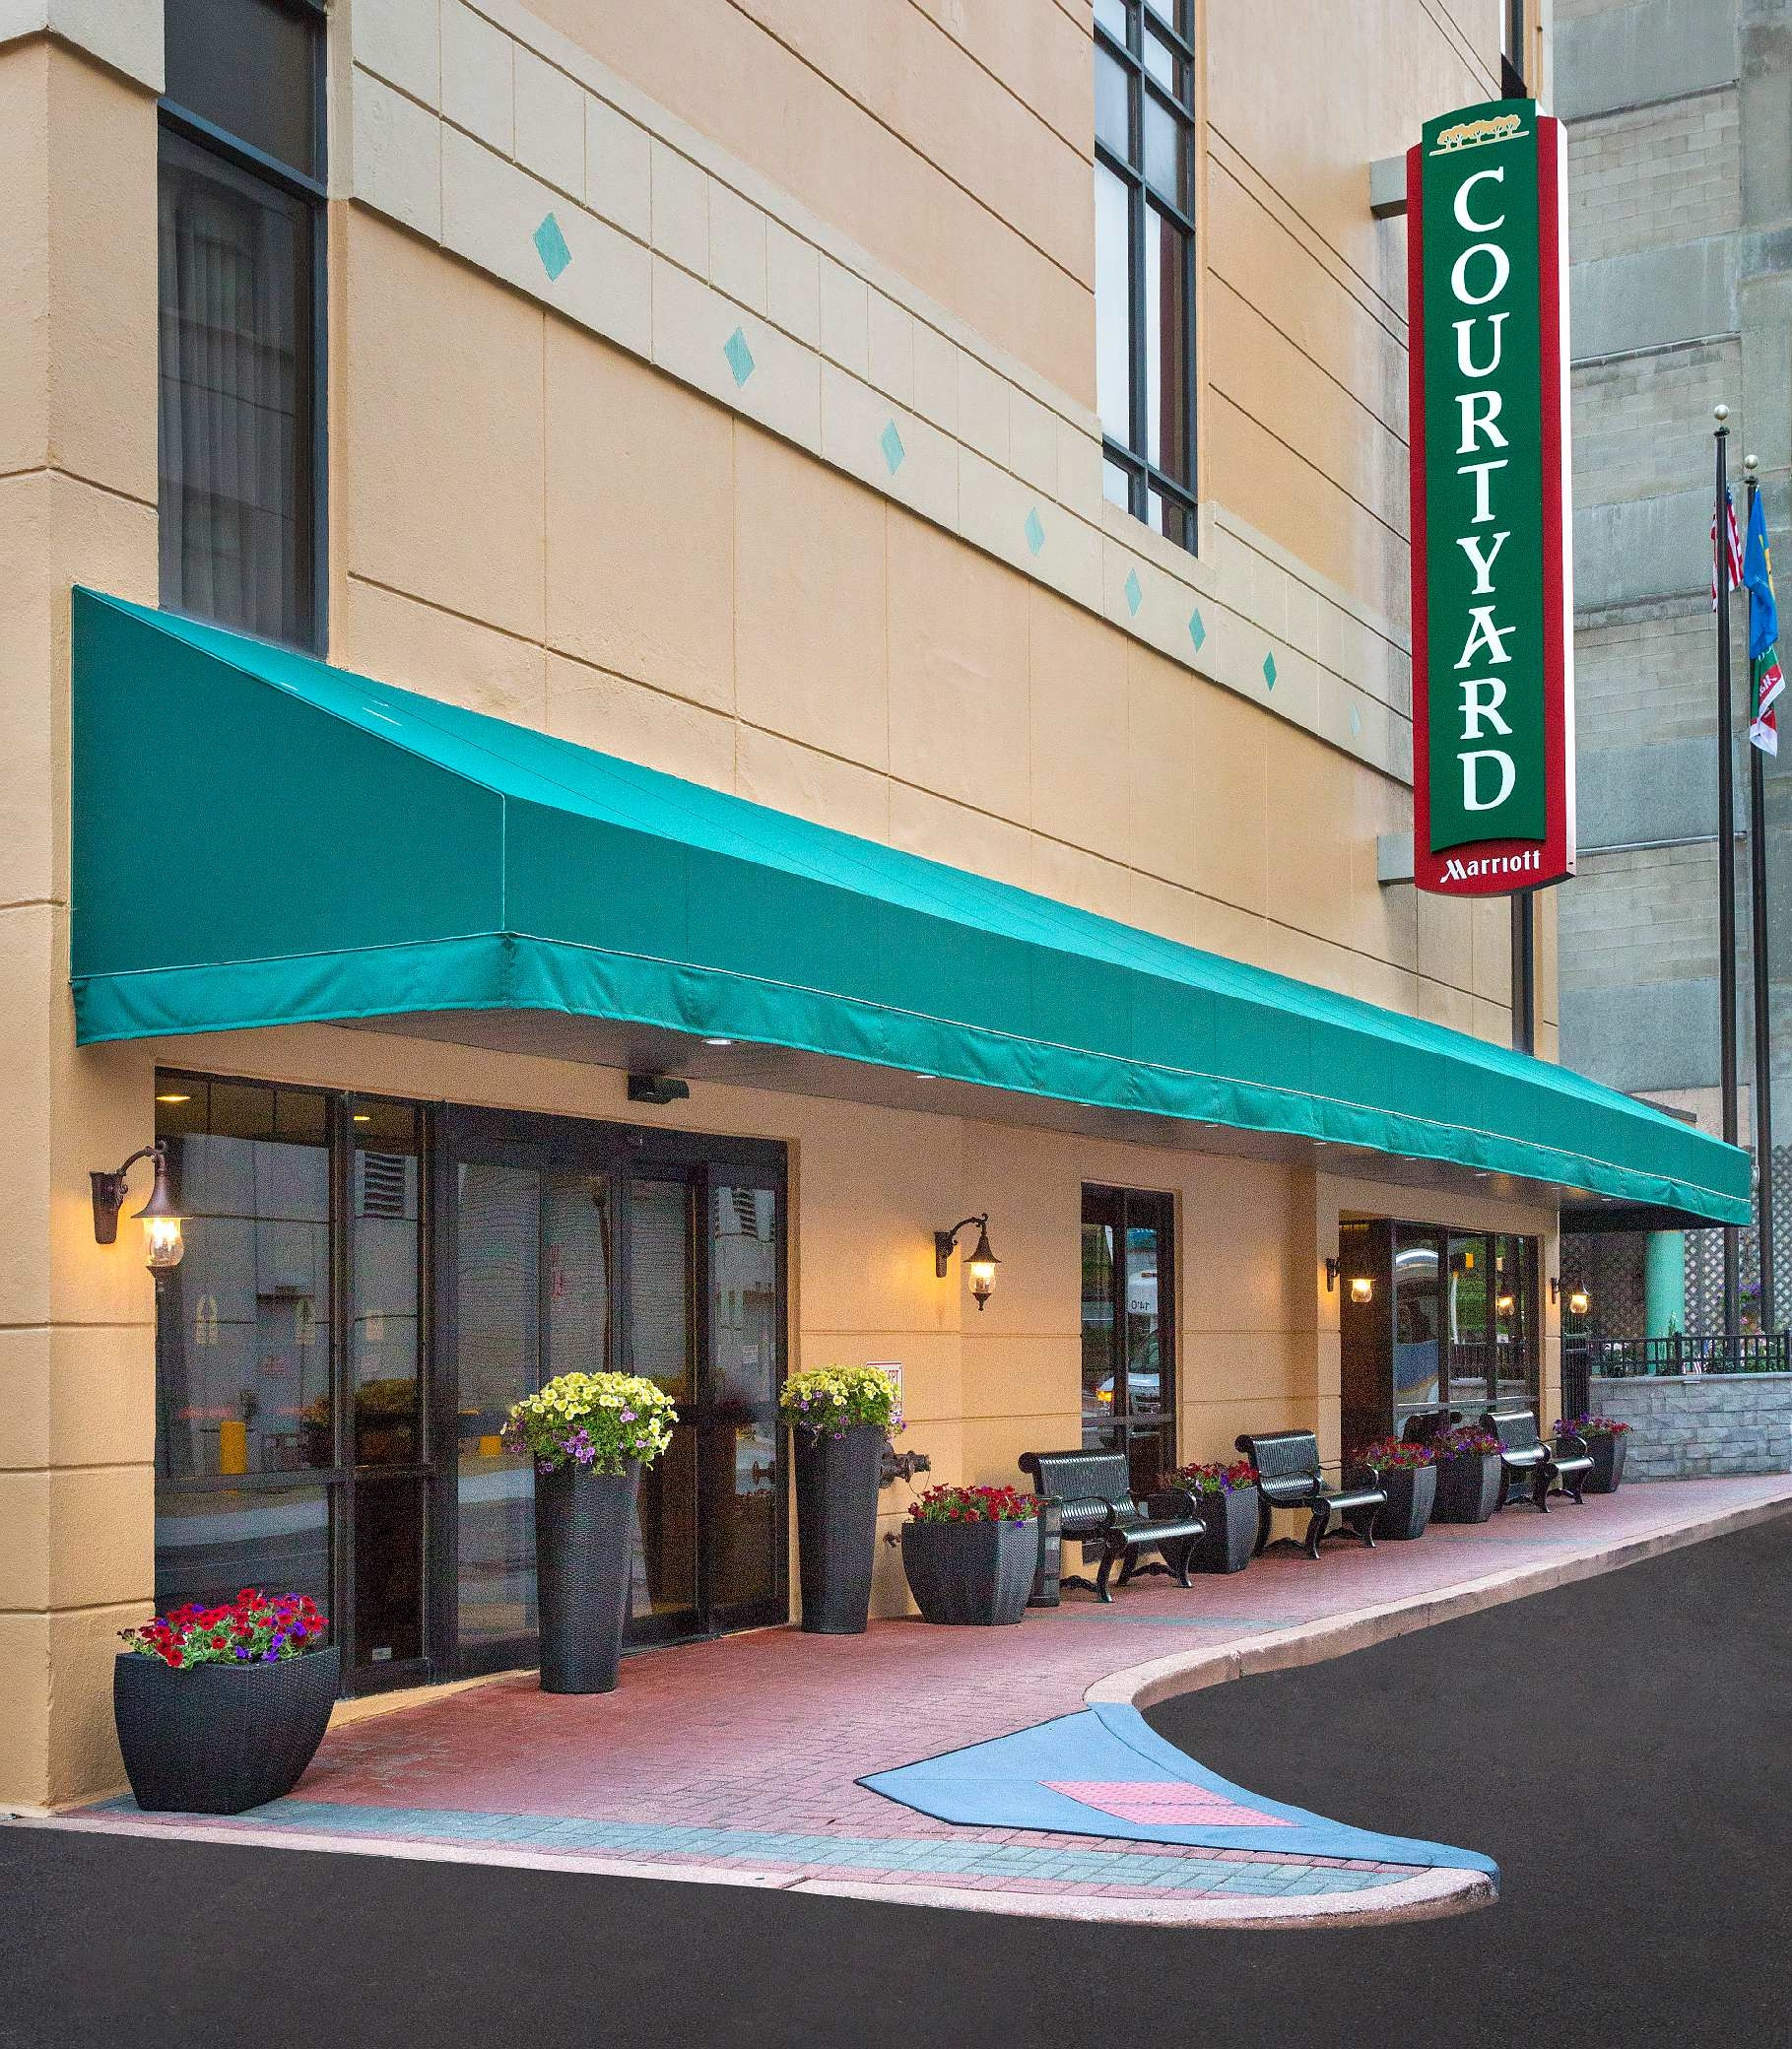 Courtyard by Marriott Wilmington Downtown image 0